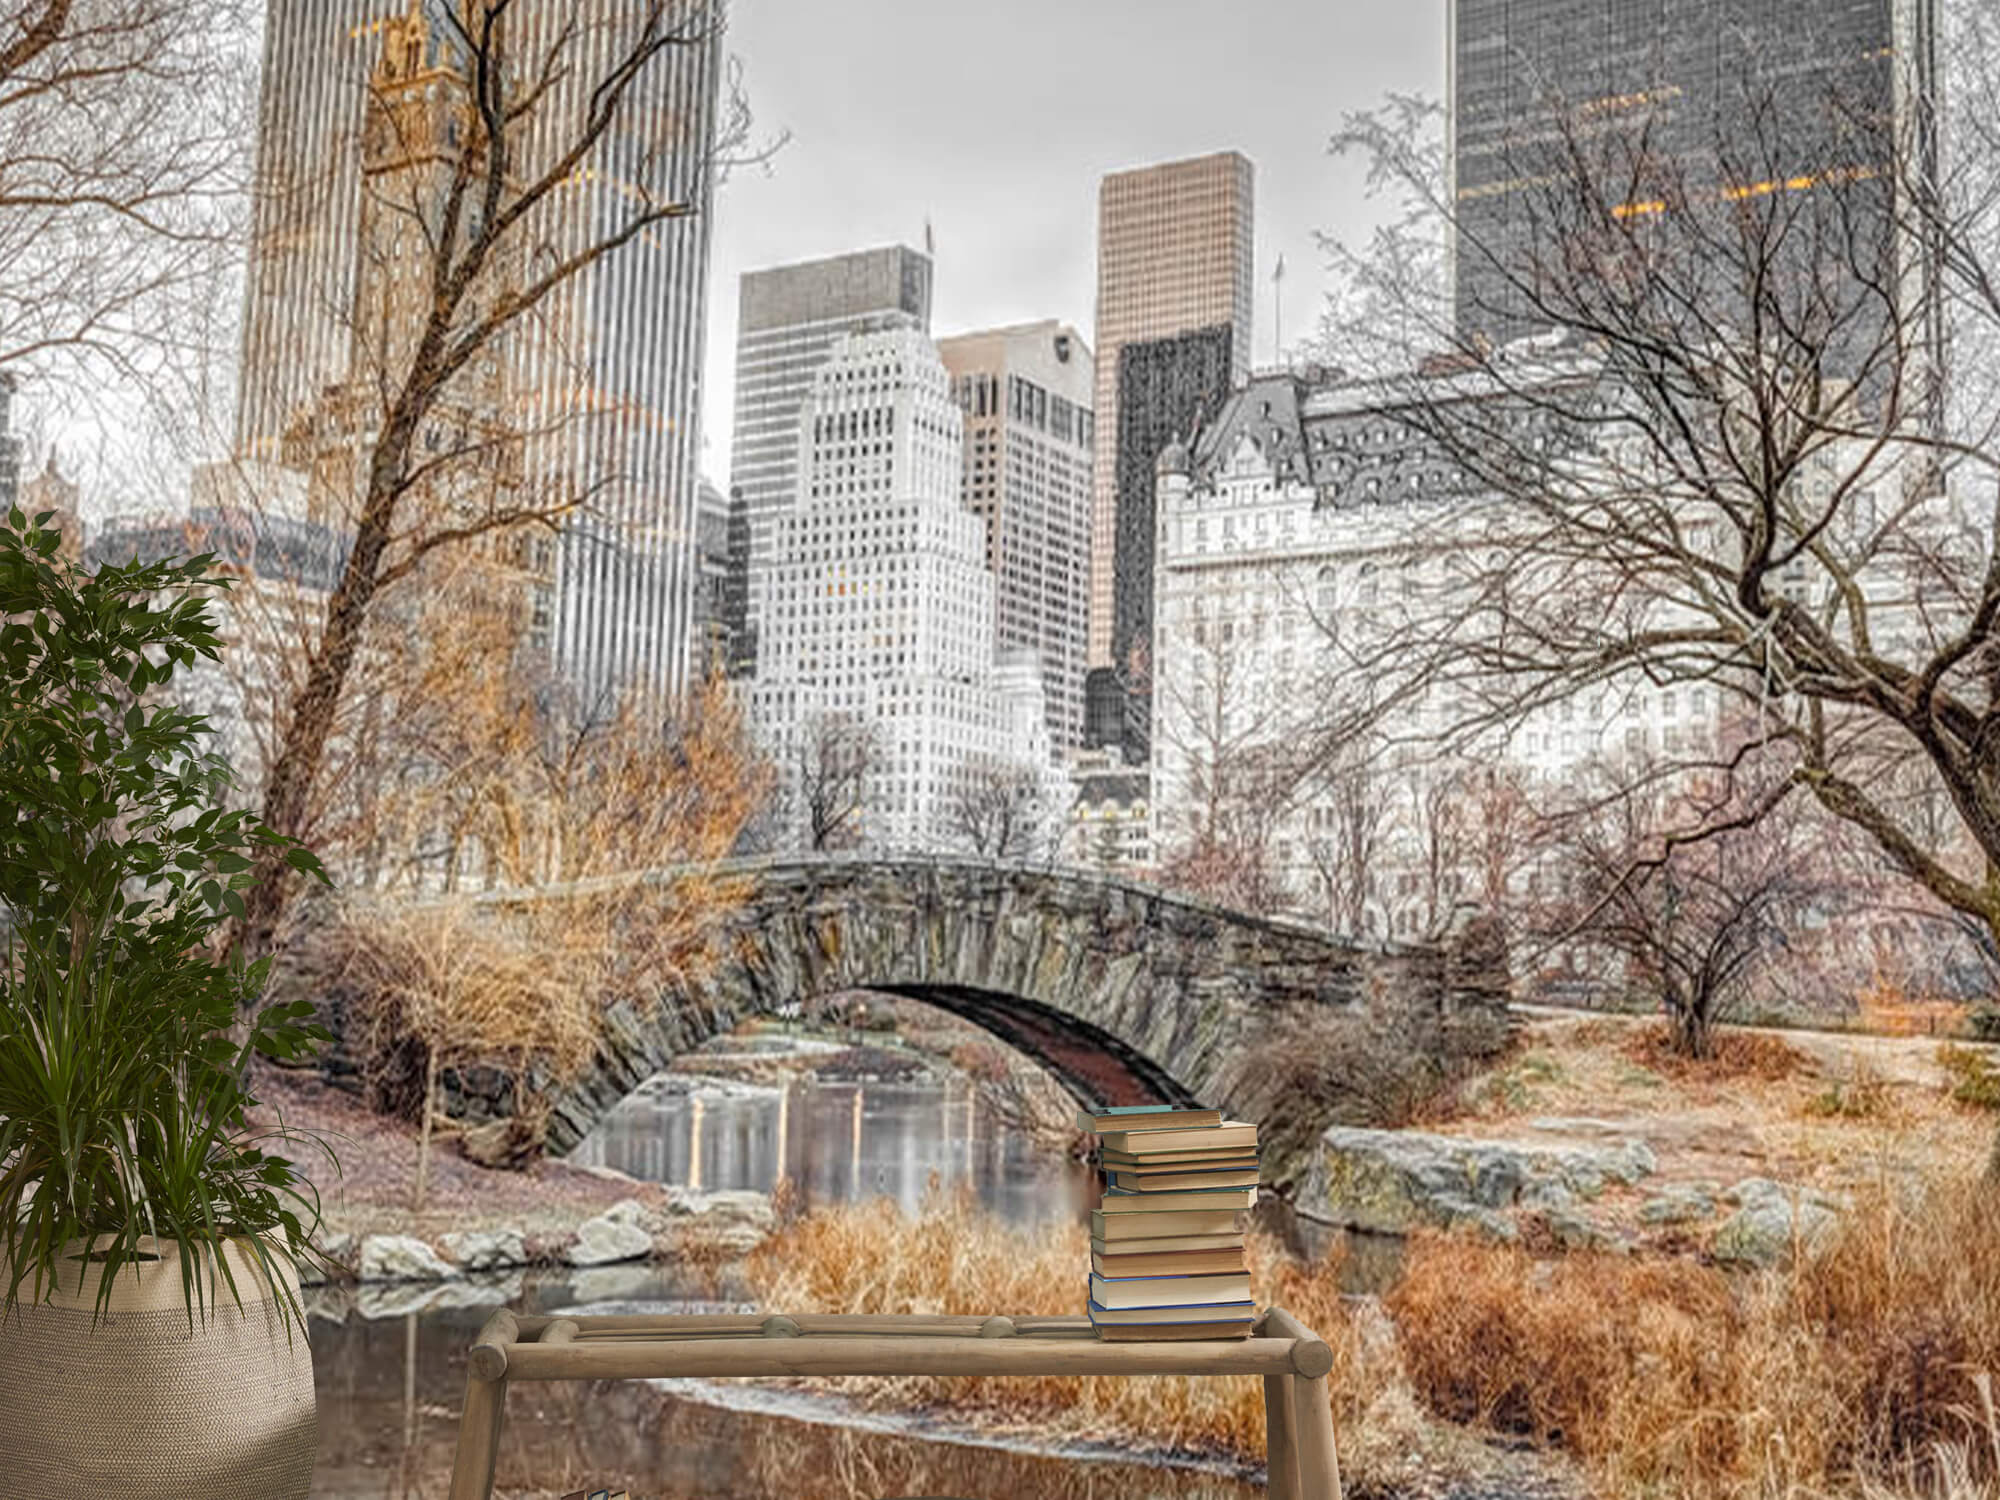 Central park in winter 14